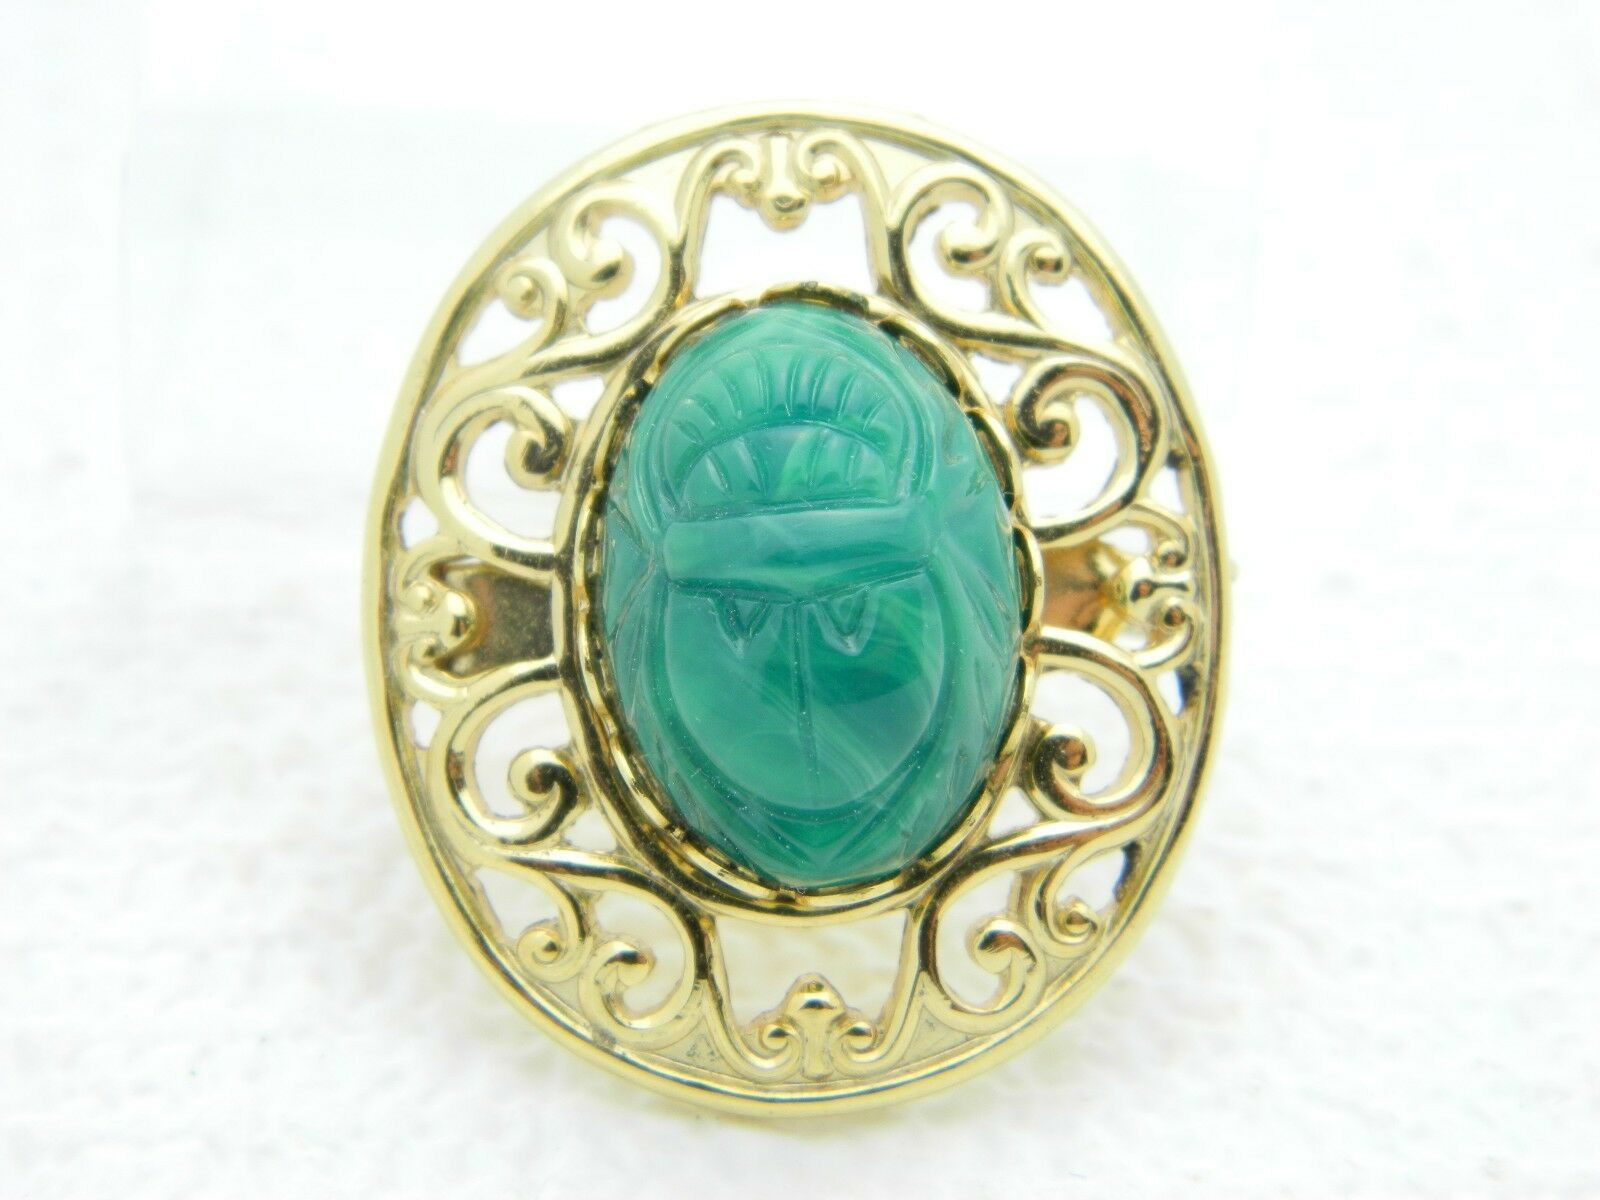 Vintage Gold Tone Green Glass Scarab Beetle Pin Brooch